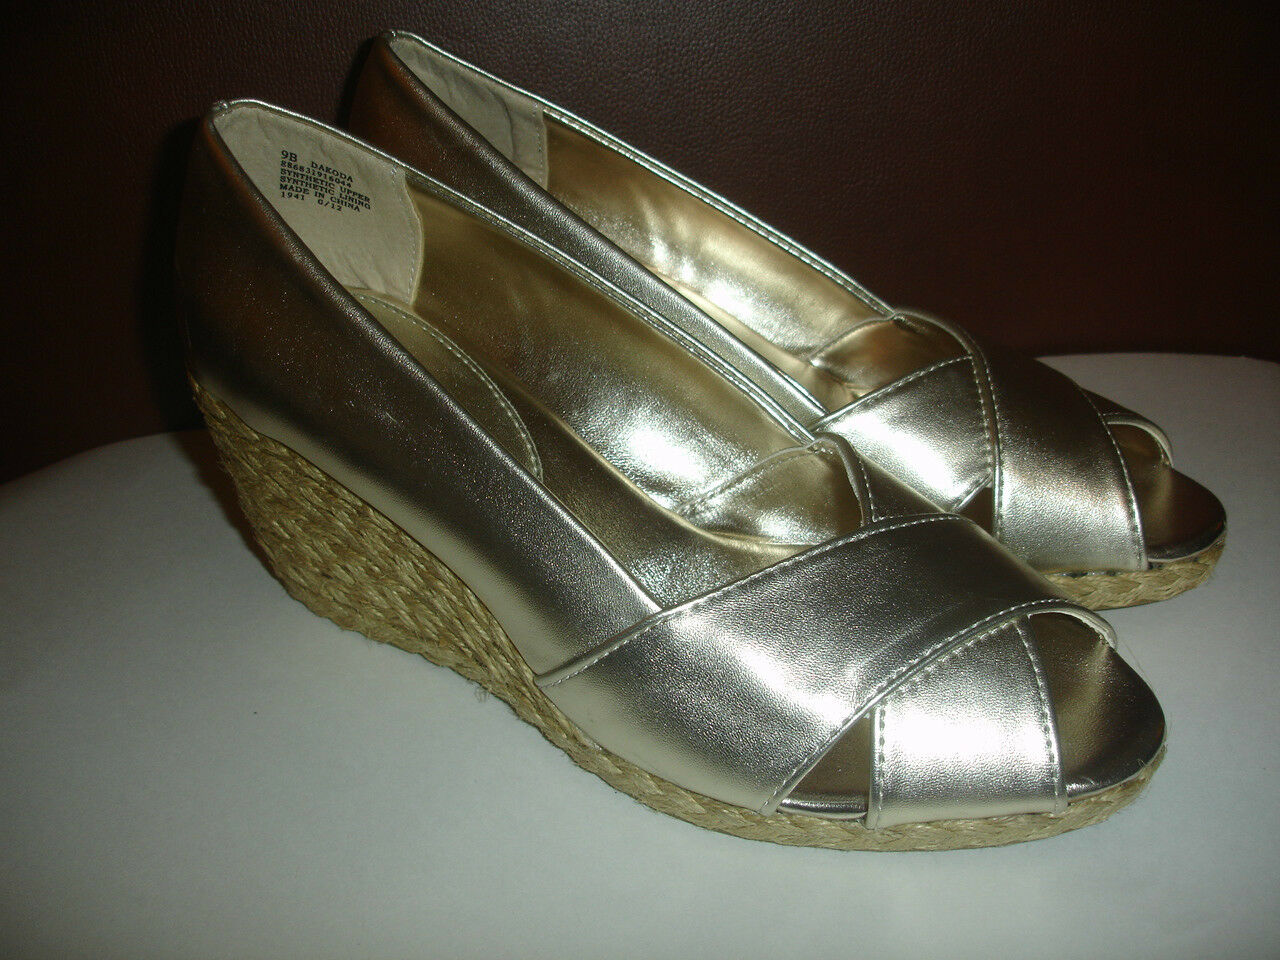 NEW CHAPS DAKODA Size 6 SHOES METALLIC gold WOMEN'S WEDGES OPEN TOE SLIP ONS